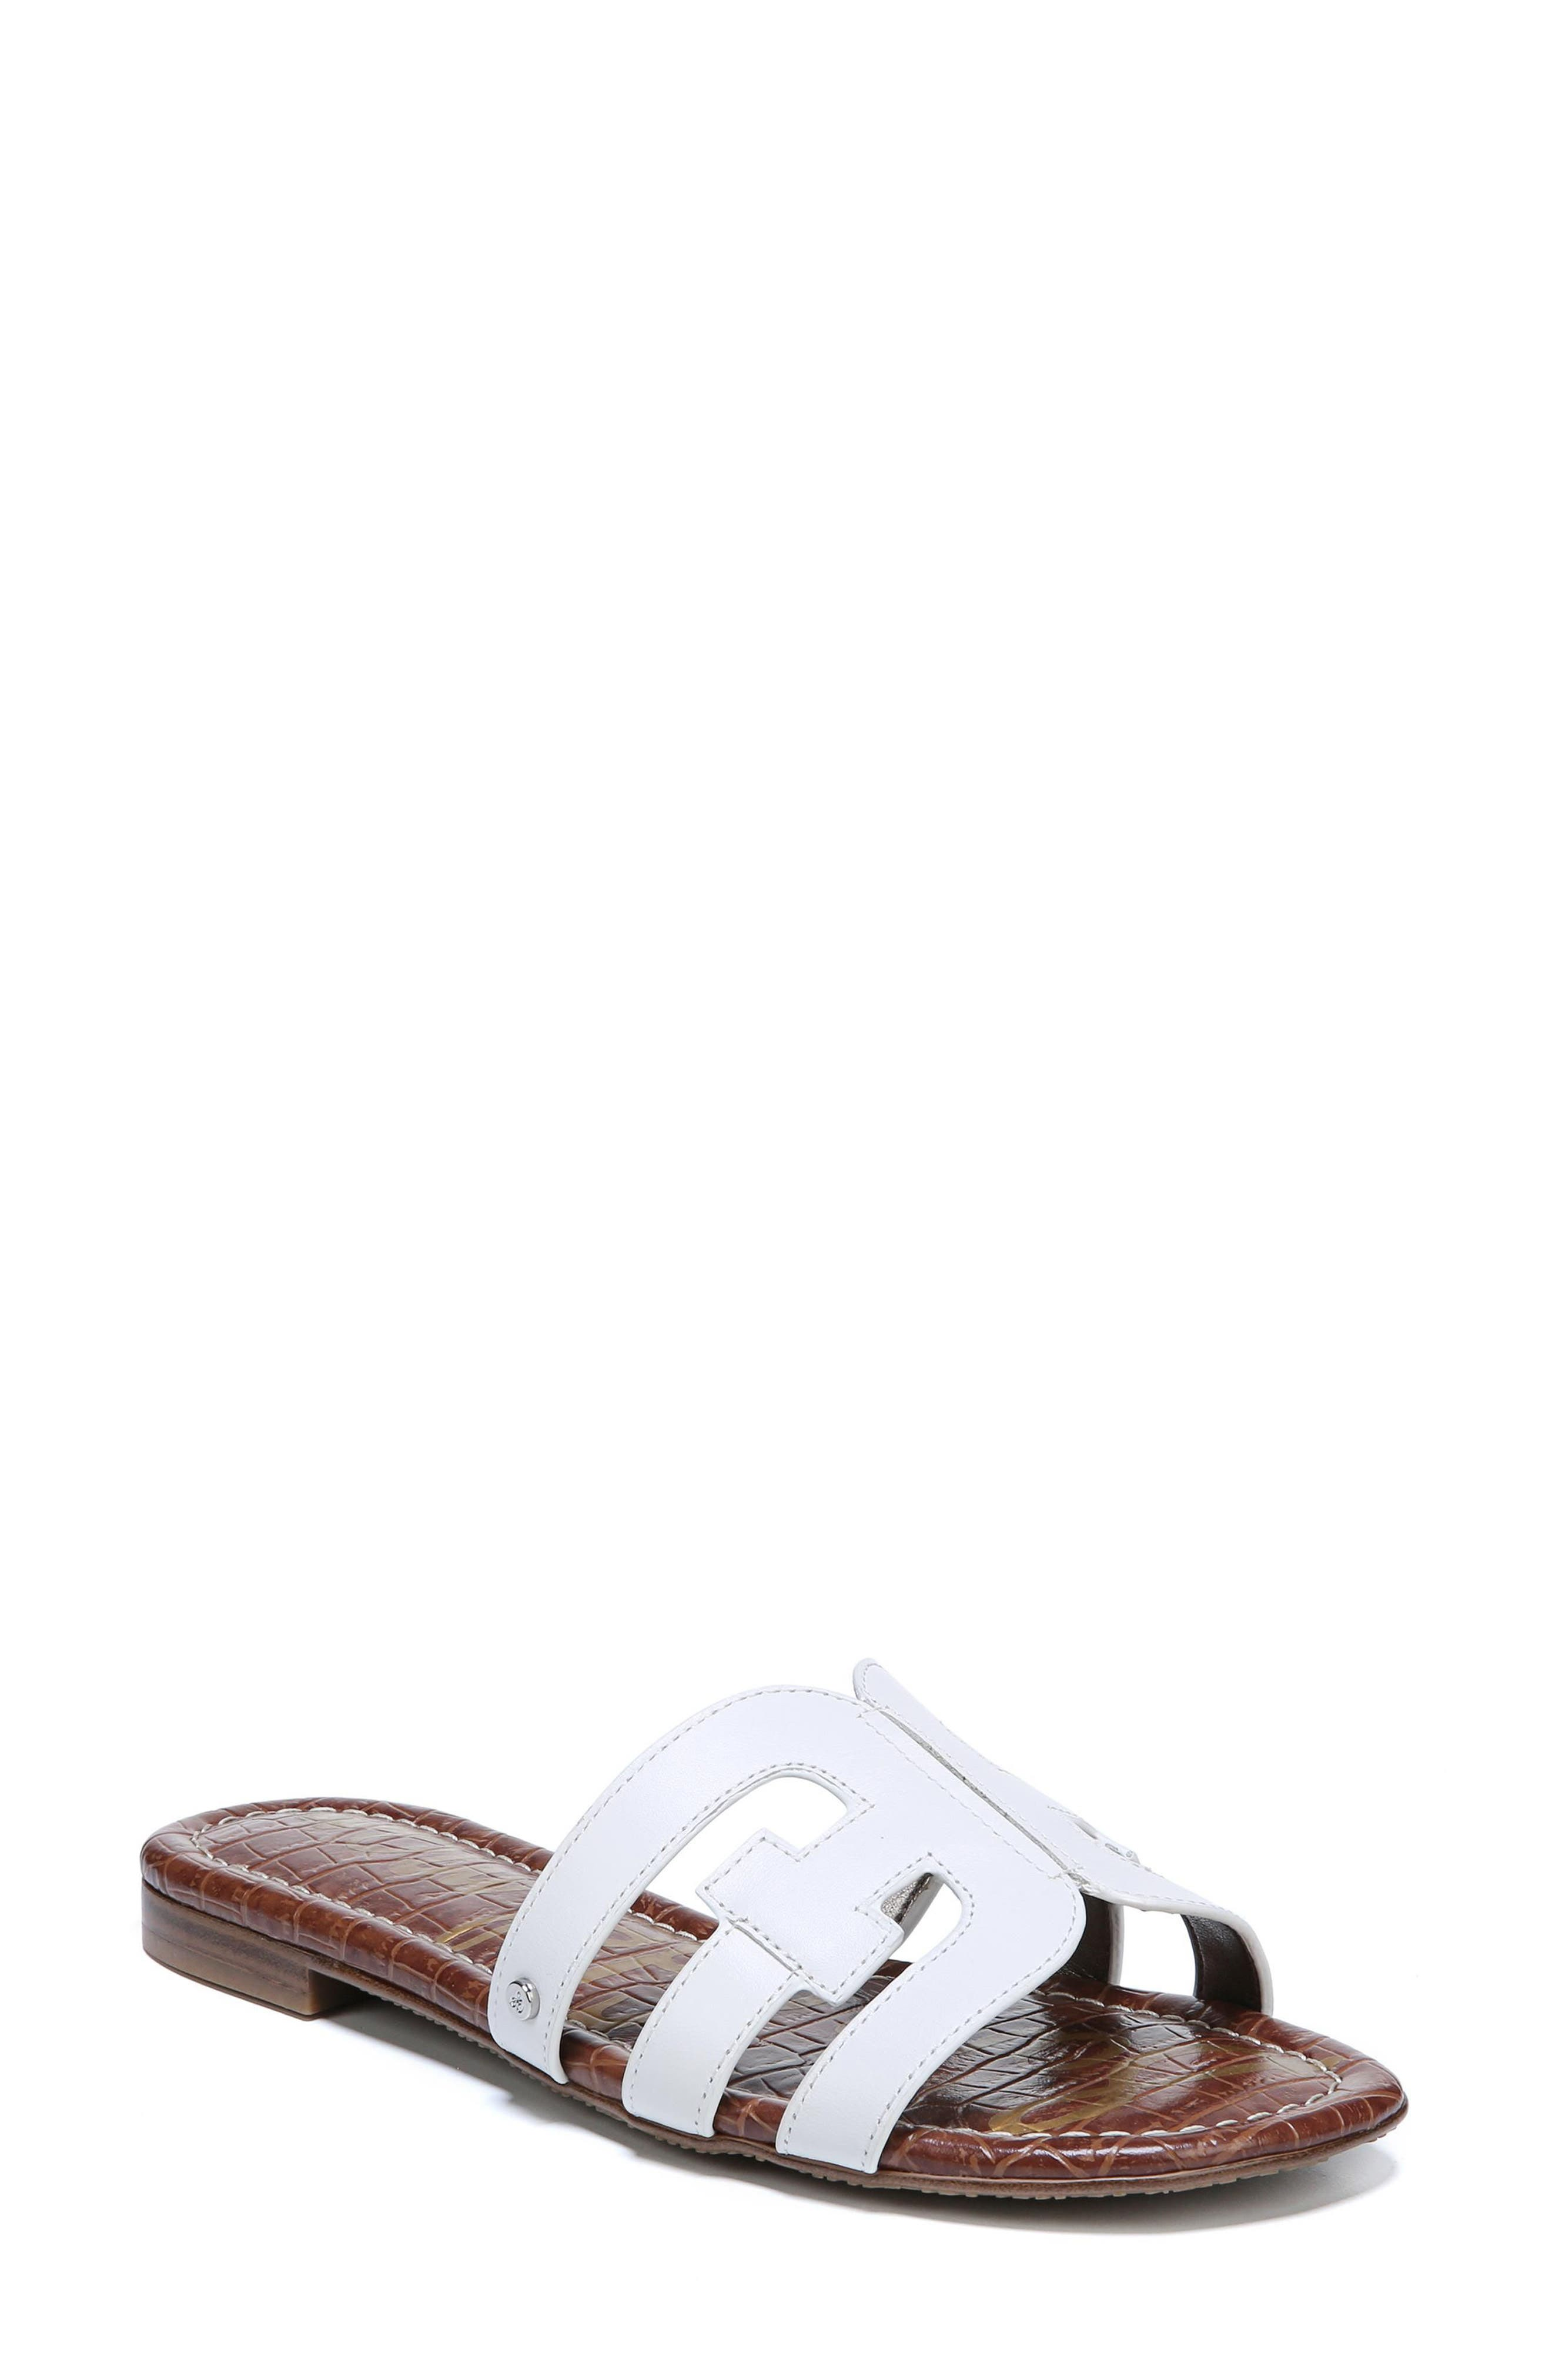 Sandals for Women On Sale, Pale Gold, Leather, 2017, 3.5 4 5.5 6 7.5 8.5 Tod's